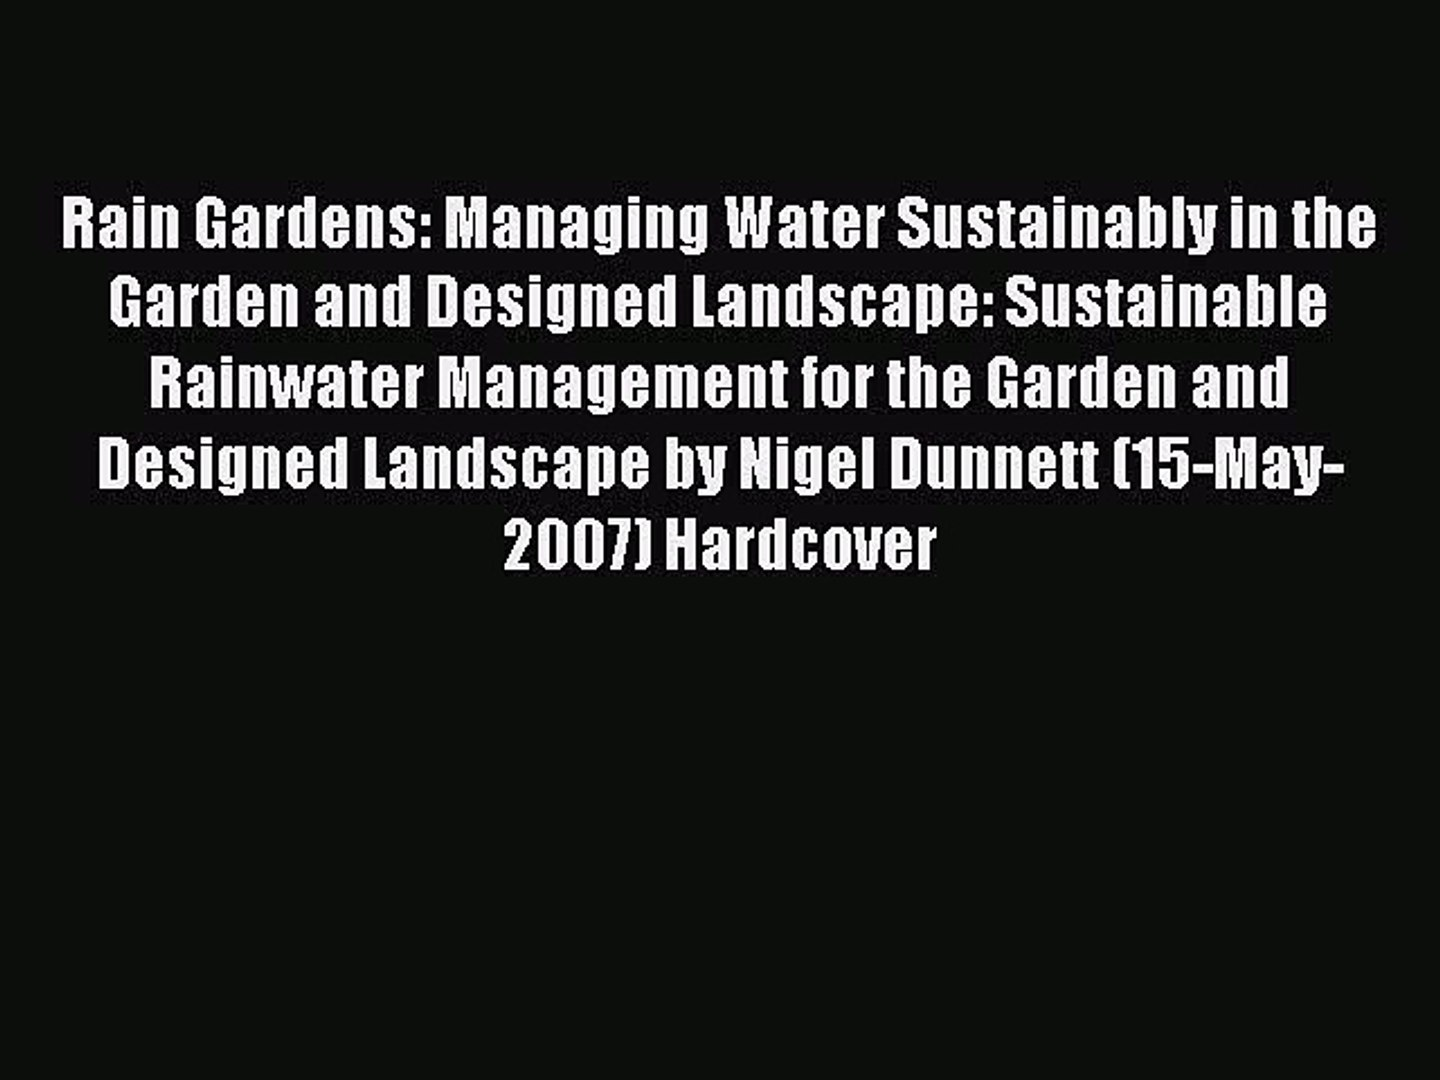 [PDF Download] Rain Gardens: Managing Water Sustainably in the Garden and Designed Landscape: